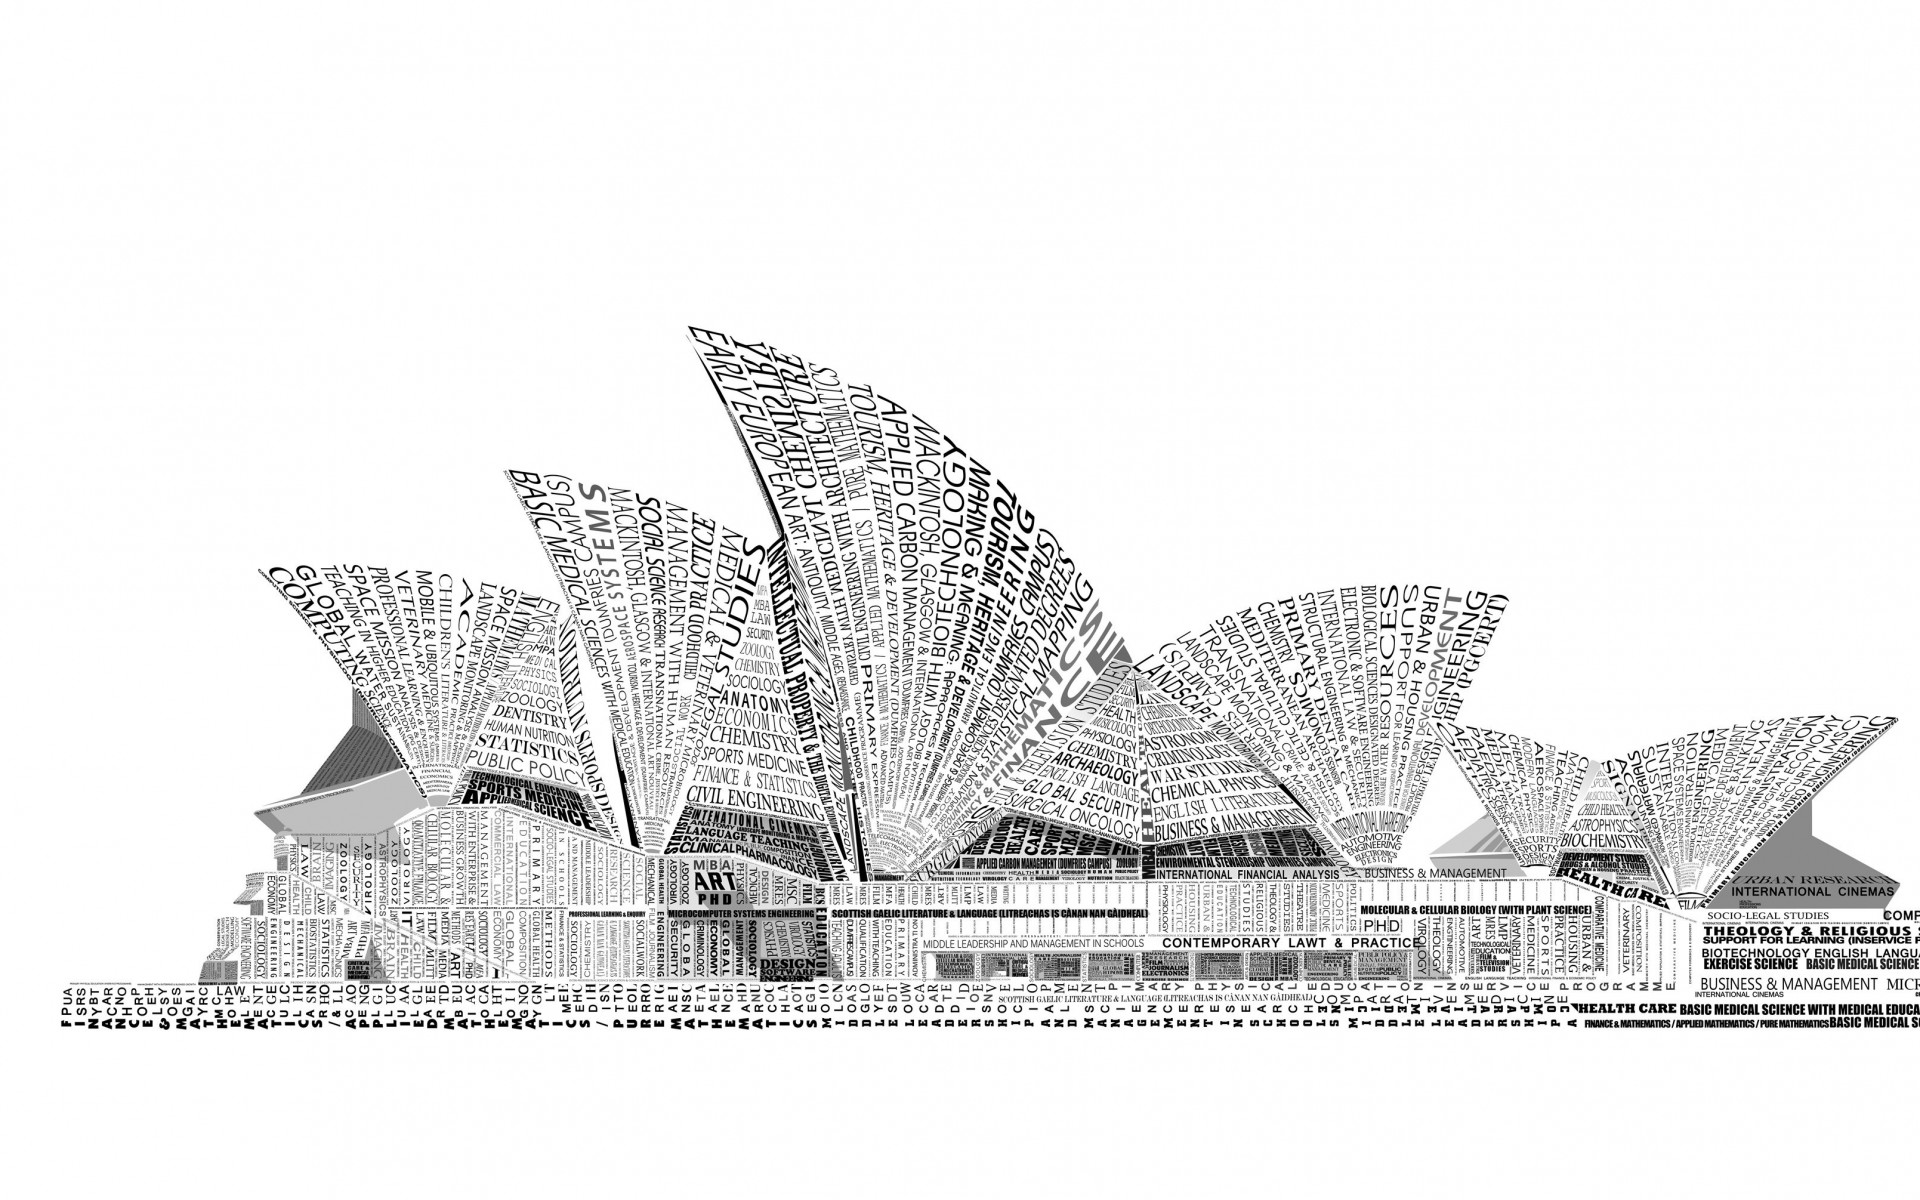 Opera House Sydney Typography Wallpaper for Desktop 1920x1200